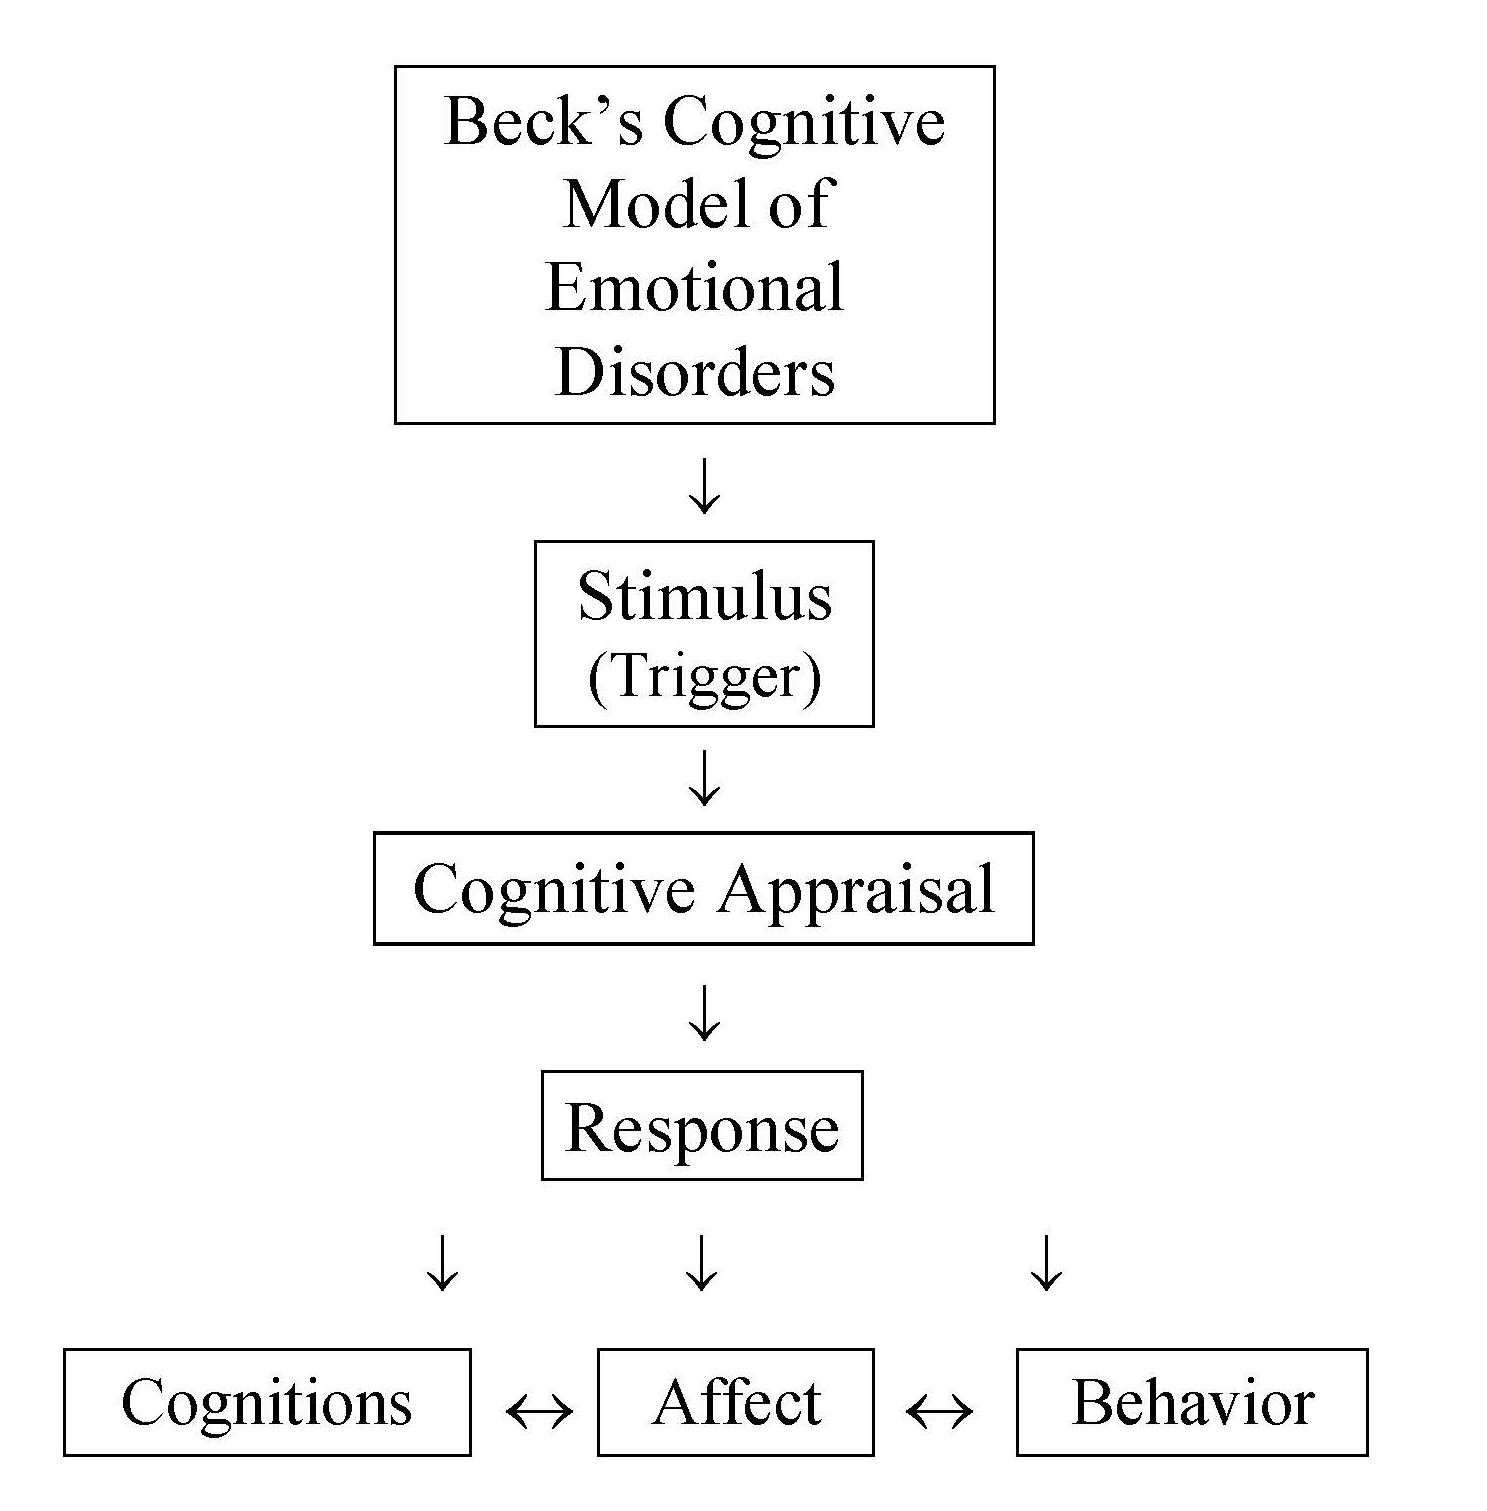 mervin-smucker-becks-cognitive-model